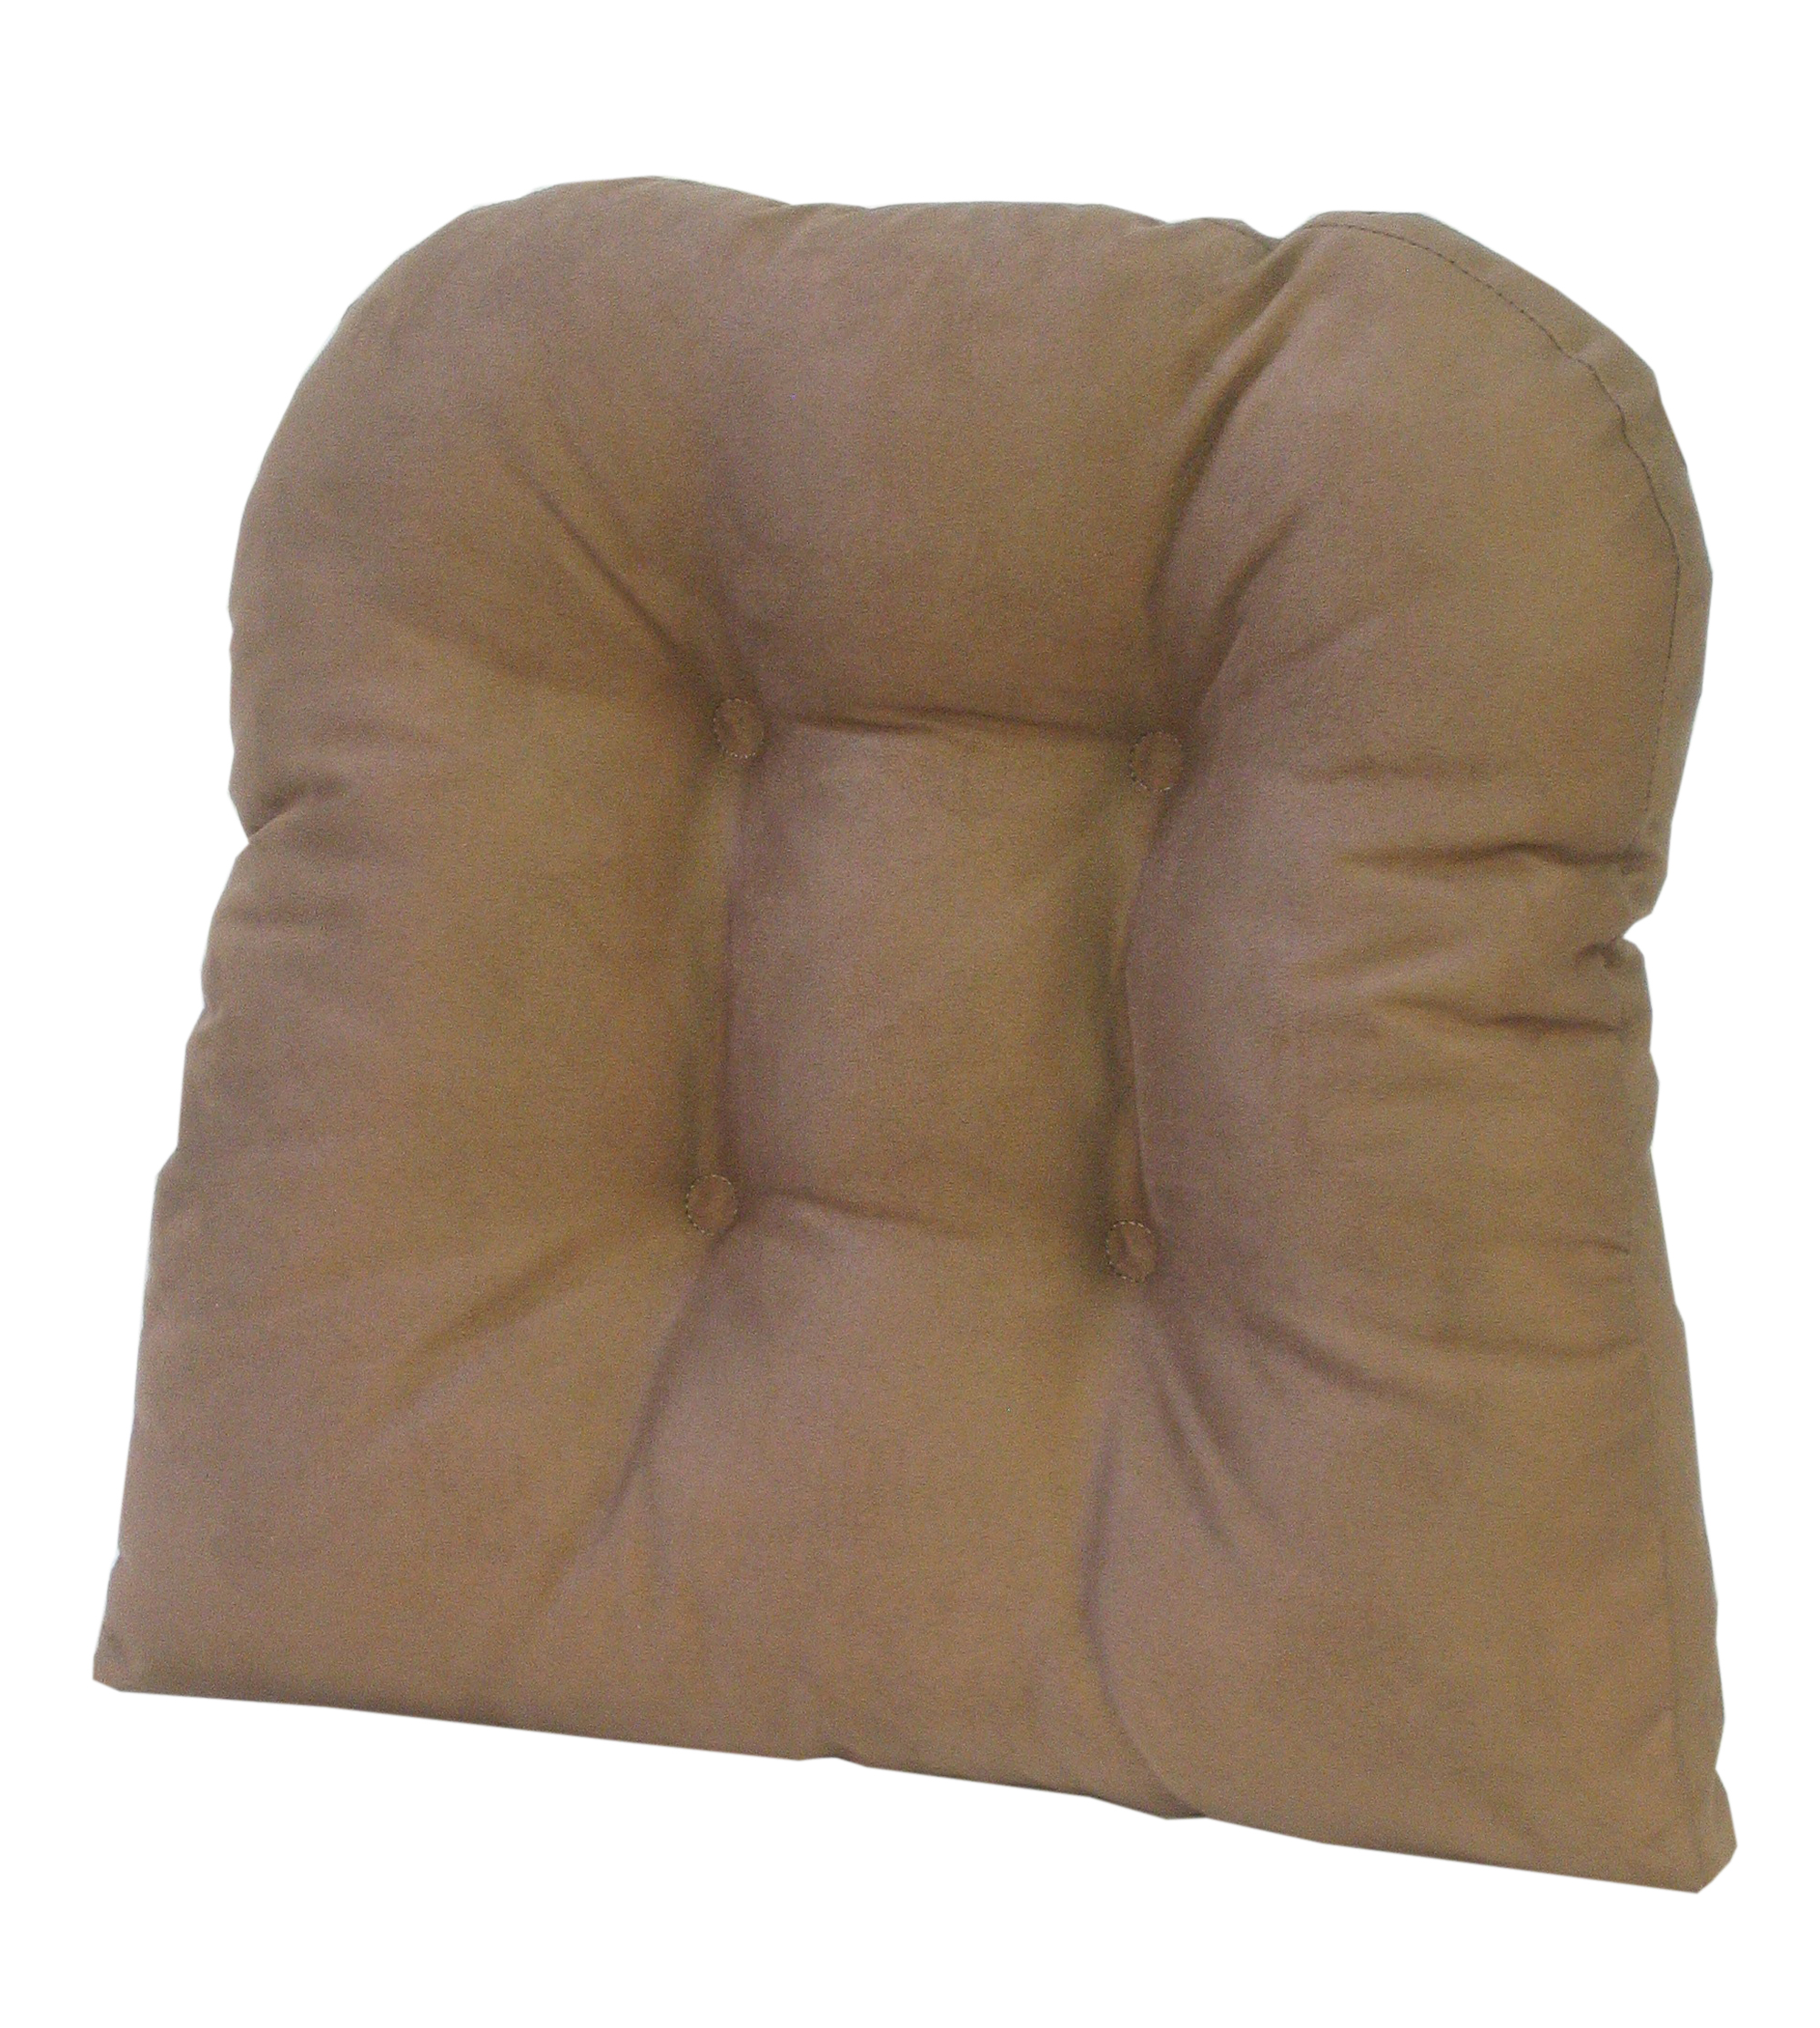 dining chair cushions non slip cheap covers australia the gripper large tufted universal